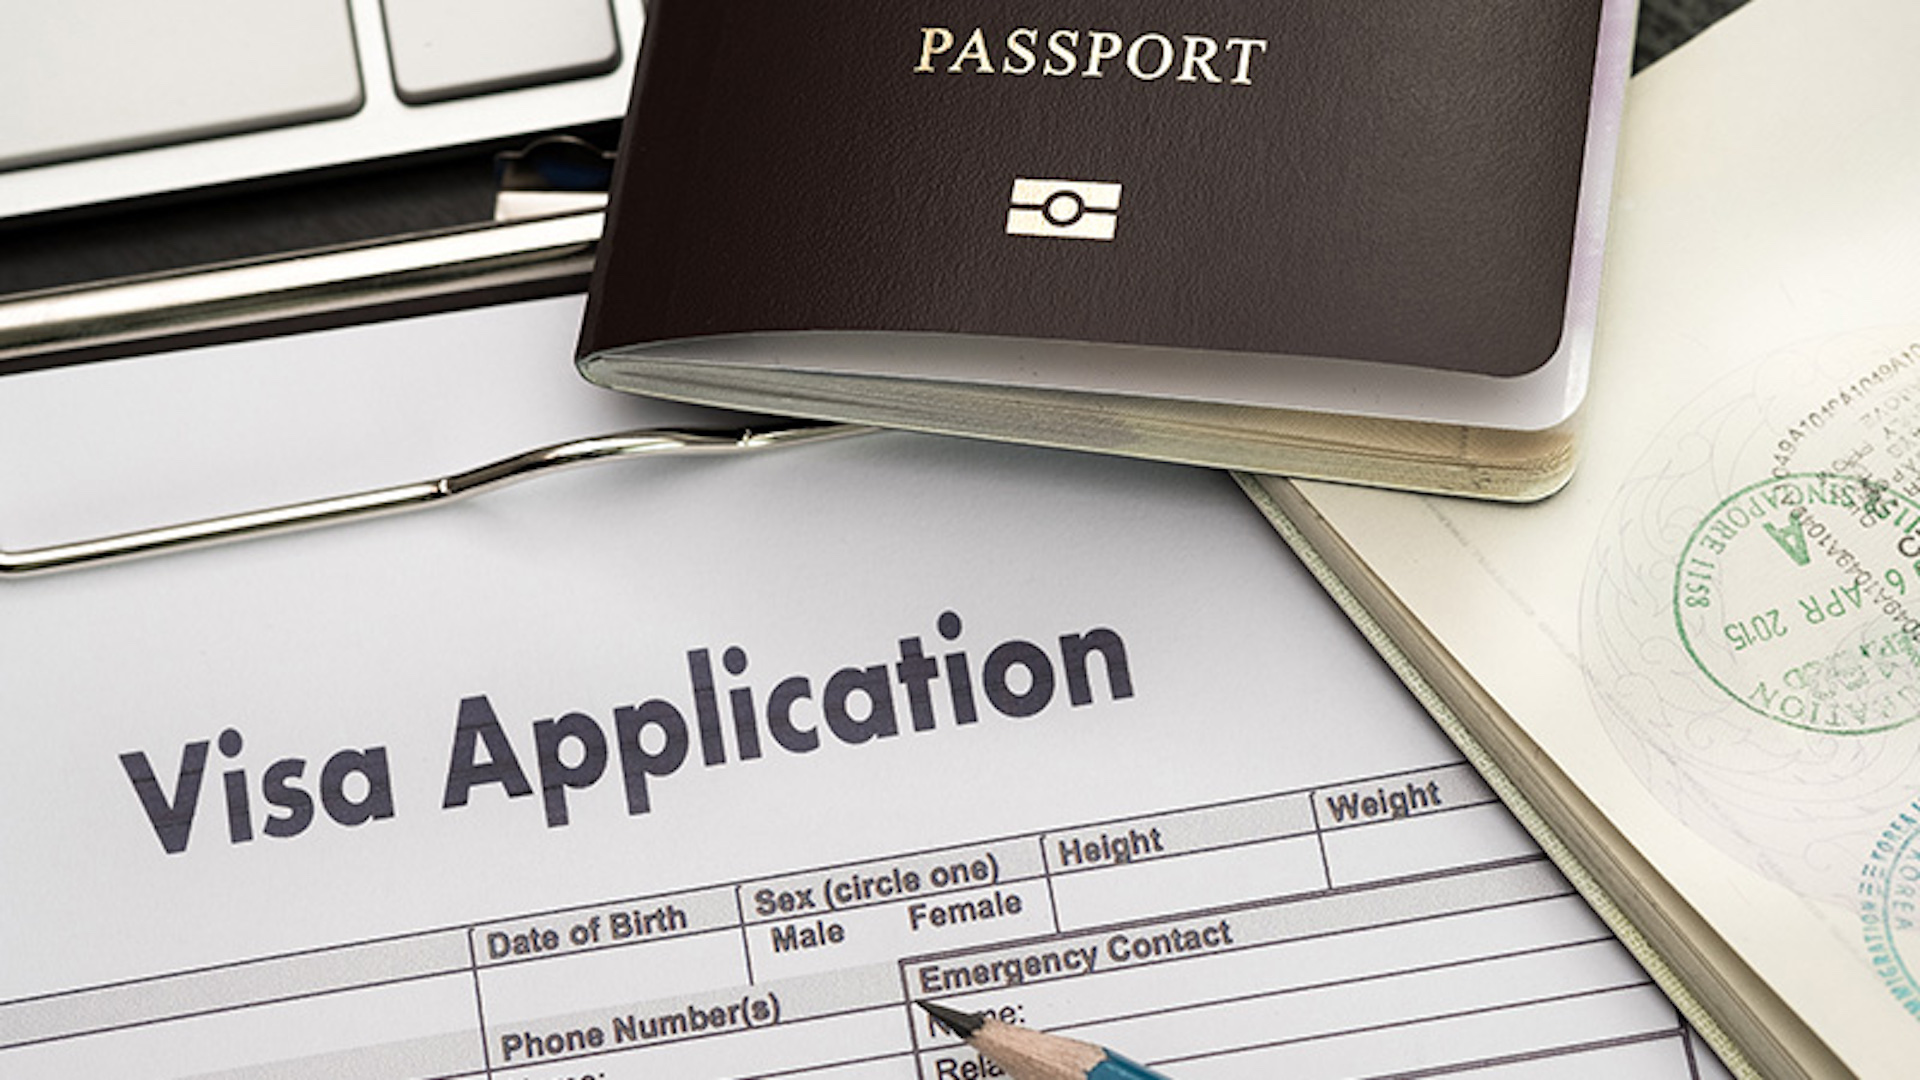 Policy Win: Simplified Procedure of Employment and Obtaining Long-Term Visa for Foreign Citizens Entered into Force